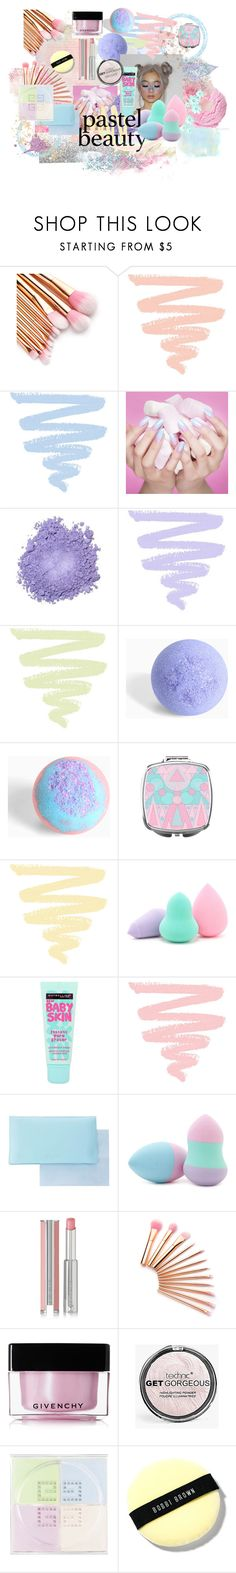 """""""Sin título #599"""" by malvinacabj on Polyvore featuring Belleza, Torrid, Forever 21, Maybelline, Shiseido, Givenchy, Boohoo y Bobbi Brown Cosmetics"""